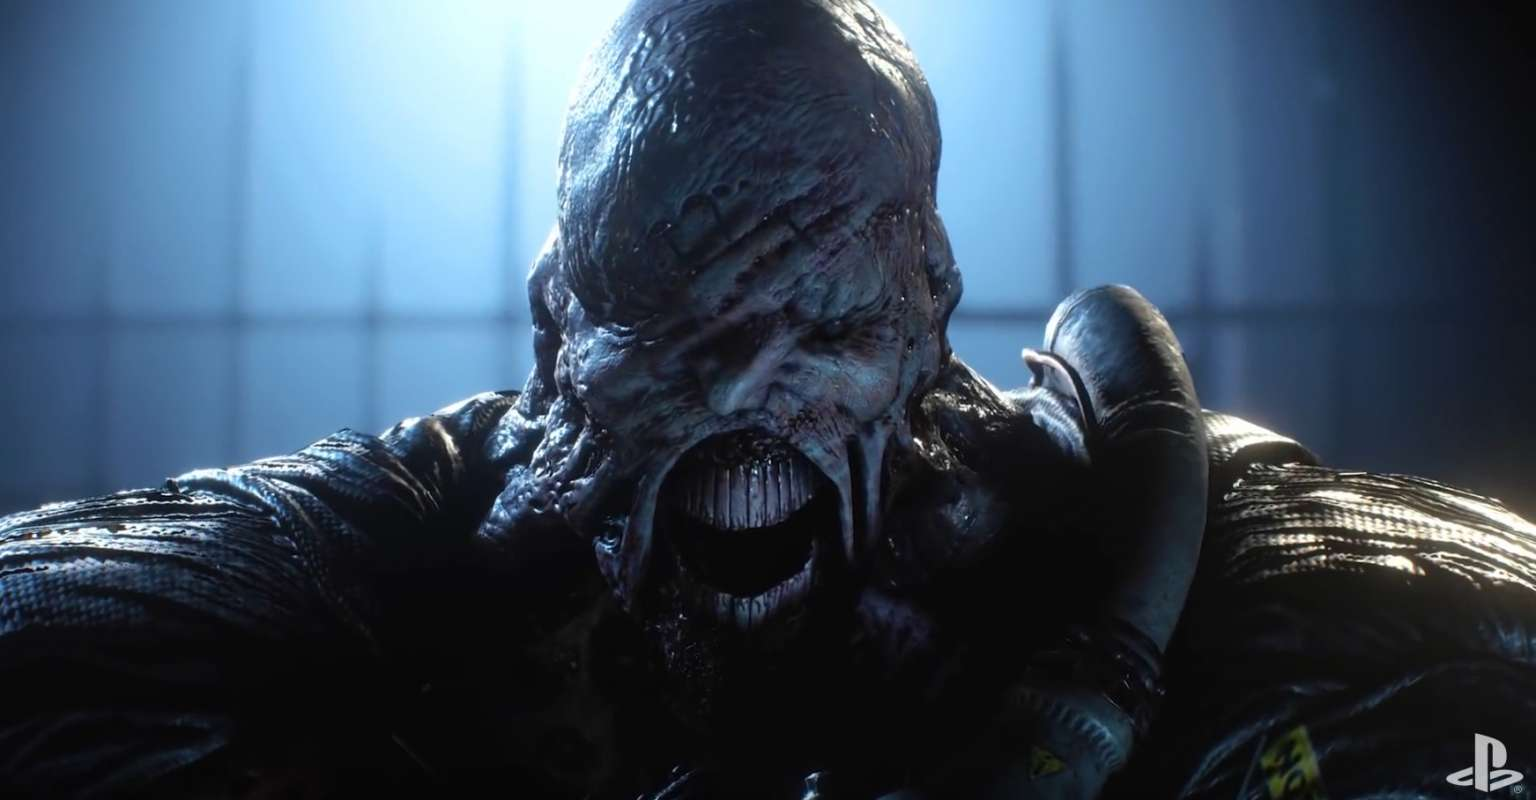 In Latest Version Of The Game, Resident Evil 3 Remake Ends Up With Glitch That Spawns Dozens Of Mr. Xs